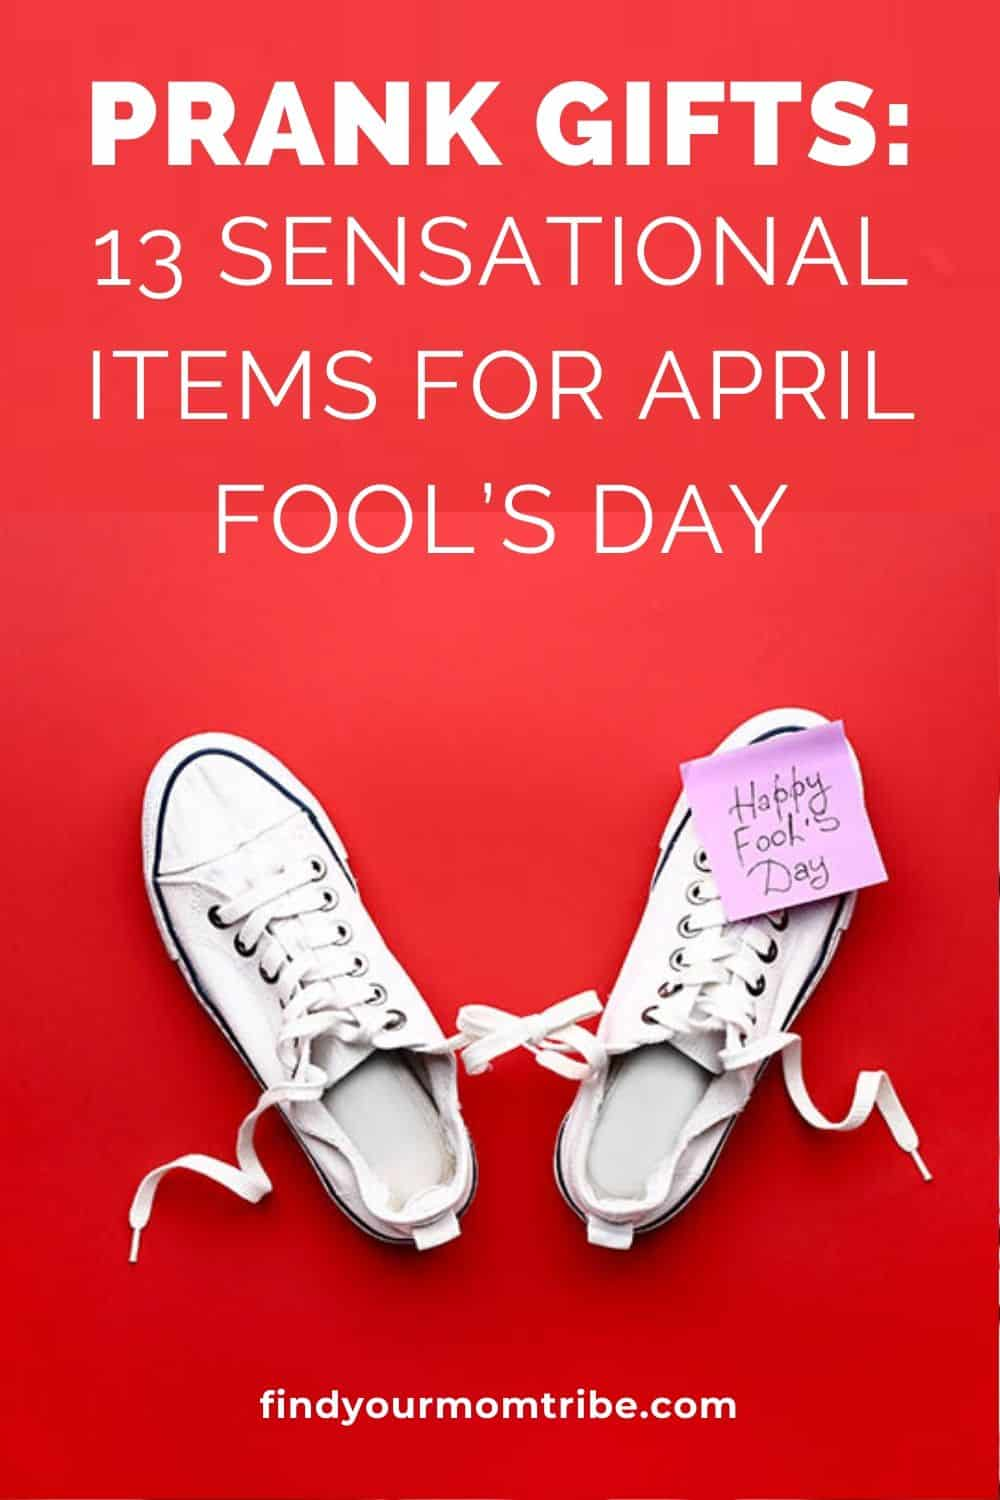 Prank Gifts: 13 Sensational Items For April Fool's Day